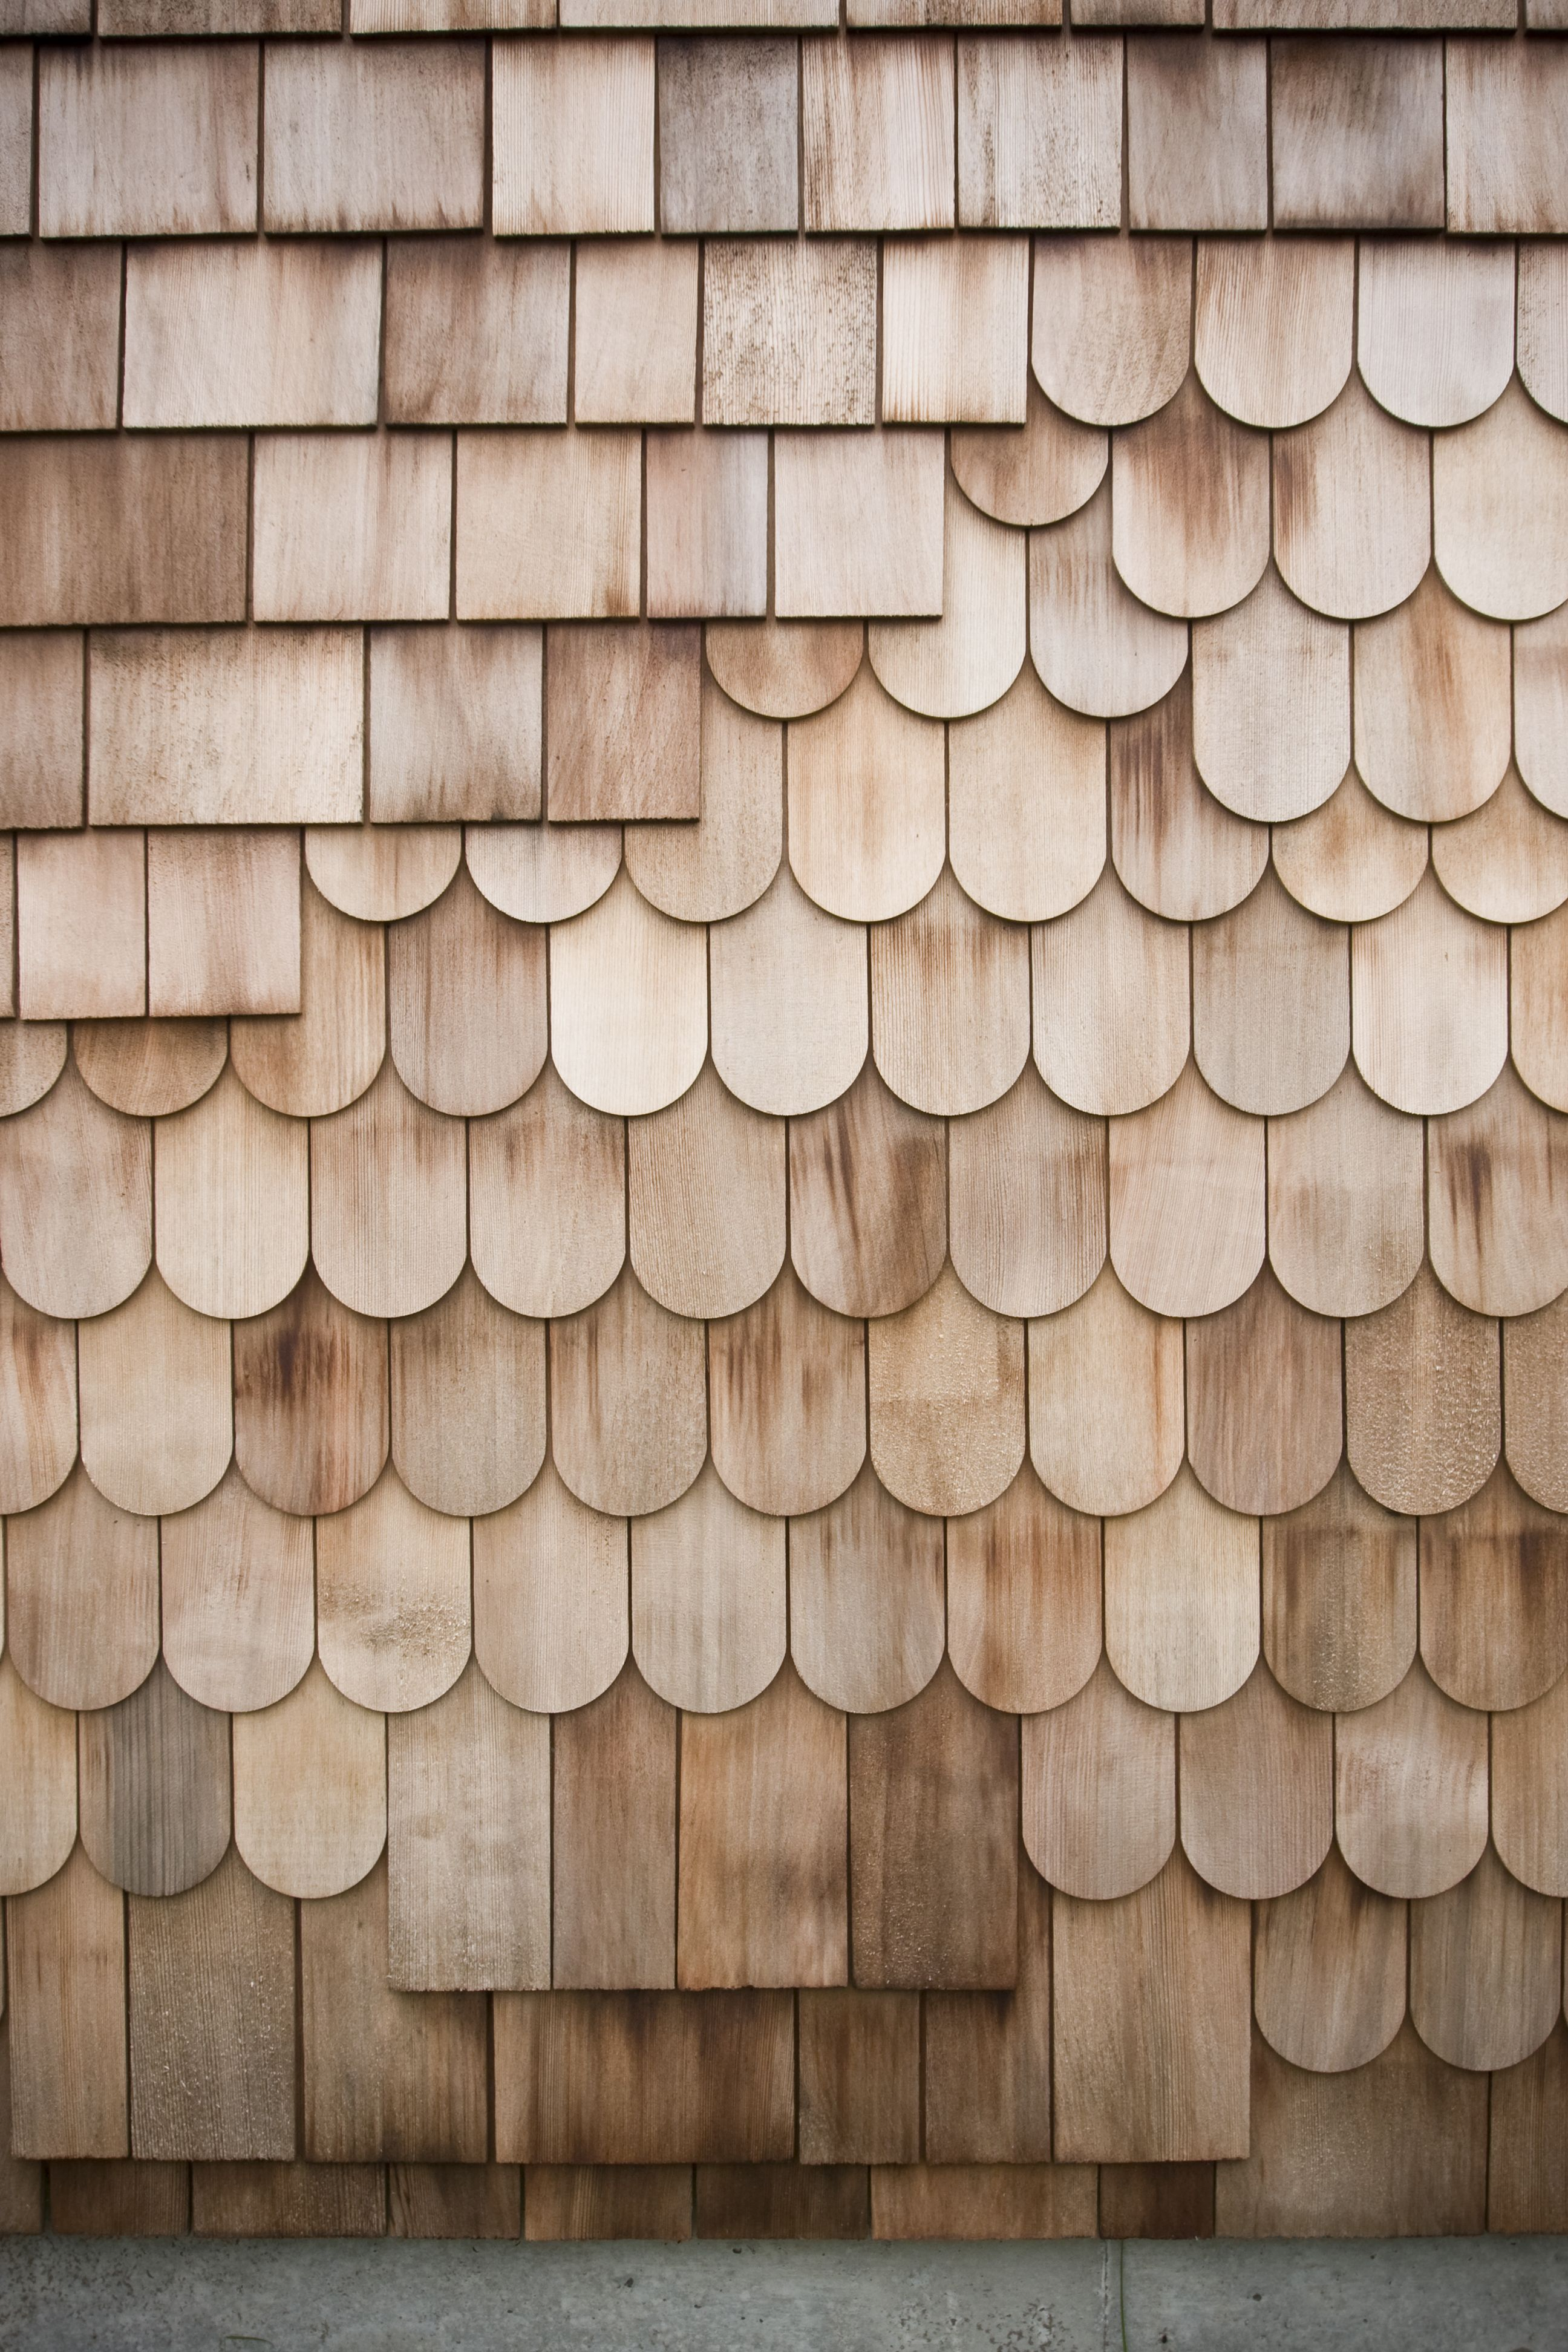 A Mix Of Red Cedar Shingles And Scales Make Of The Exterior The Design Is Intended To Be A Wood Cladding Interior Cedar Shingles Wood